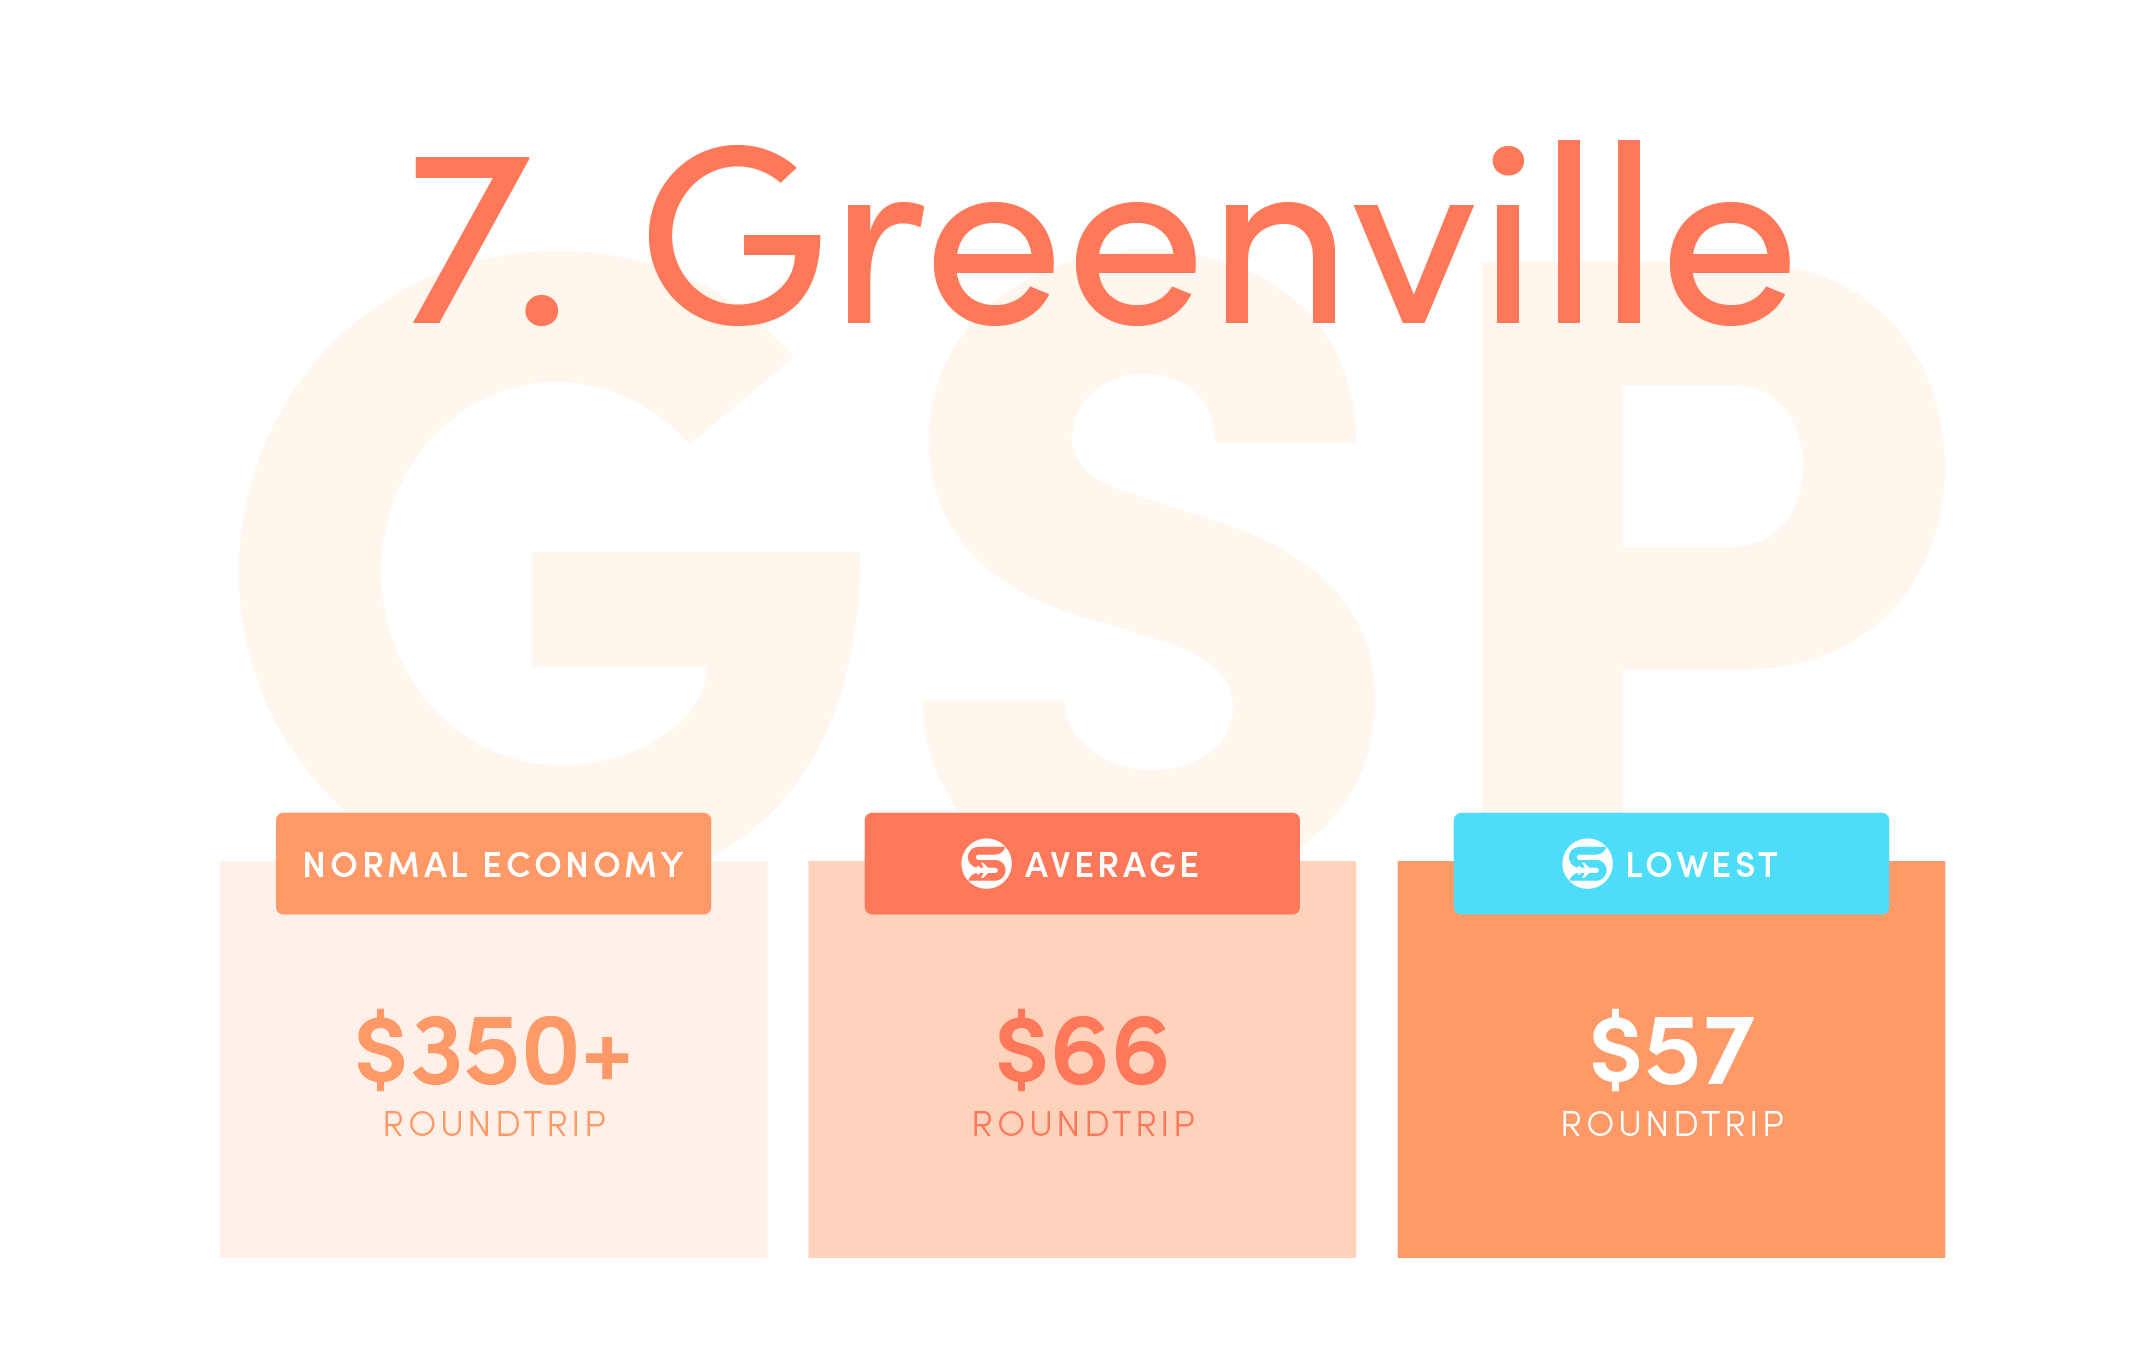 Greenville (GSP).Normal economy price from the US: $350+ roundtrip.Average Scott's Cheap Flights economy price: $66 roundtrip.Lowest Scott's Cheap Flights price in 2021: $57 roundtrip.